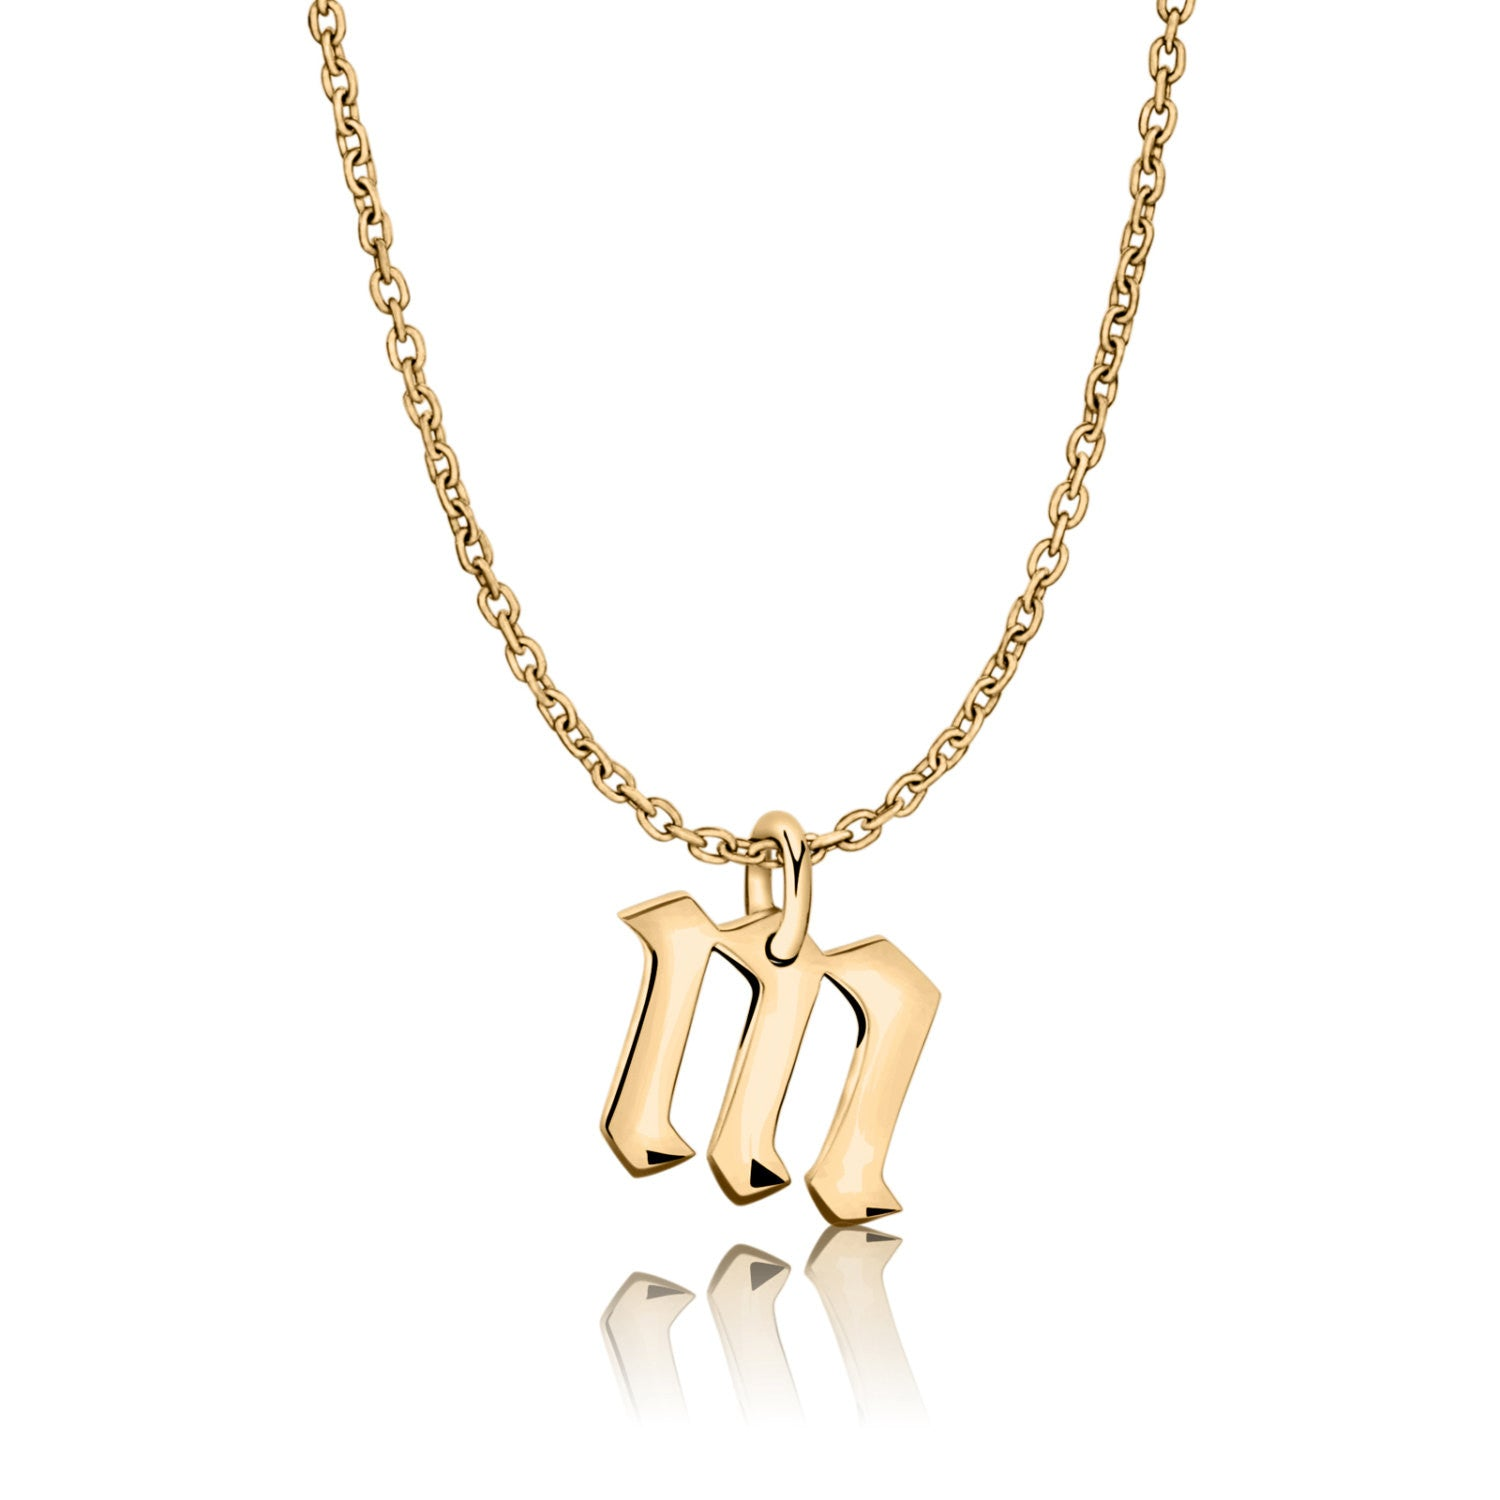 14k Gold Gothic Initial M Necklace